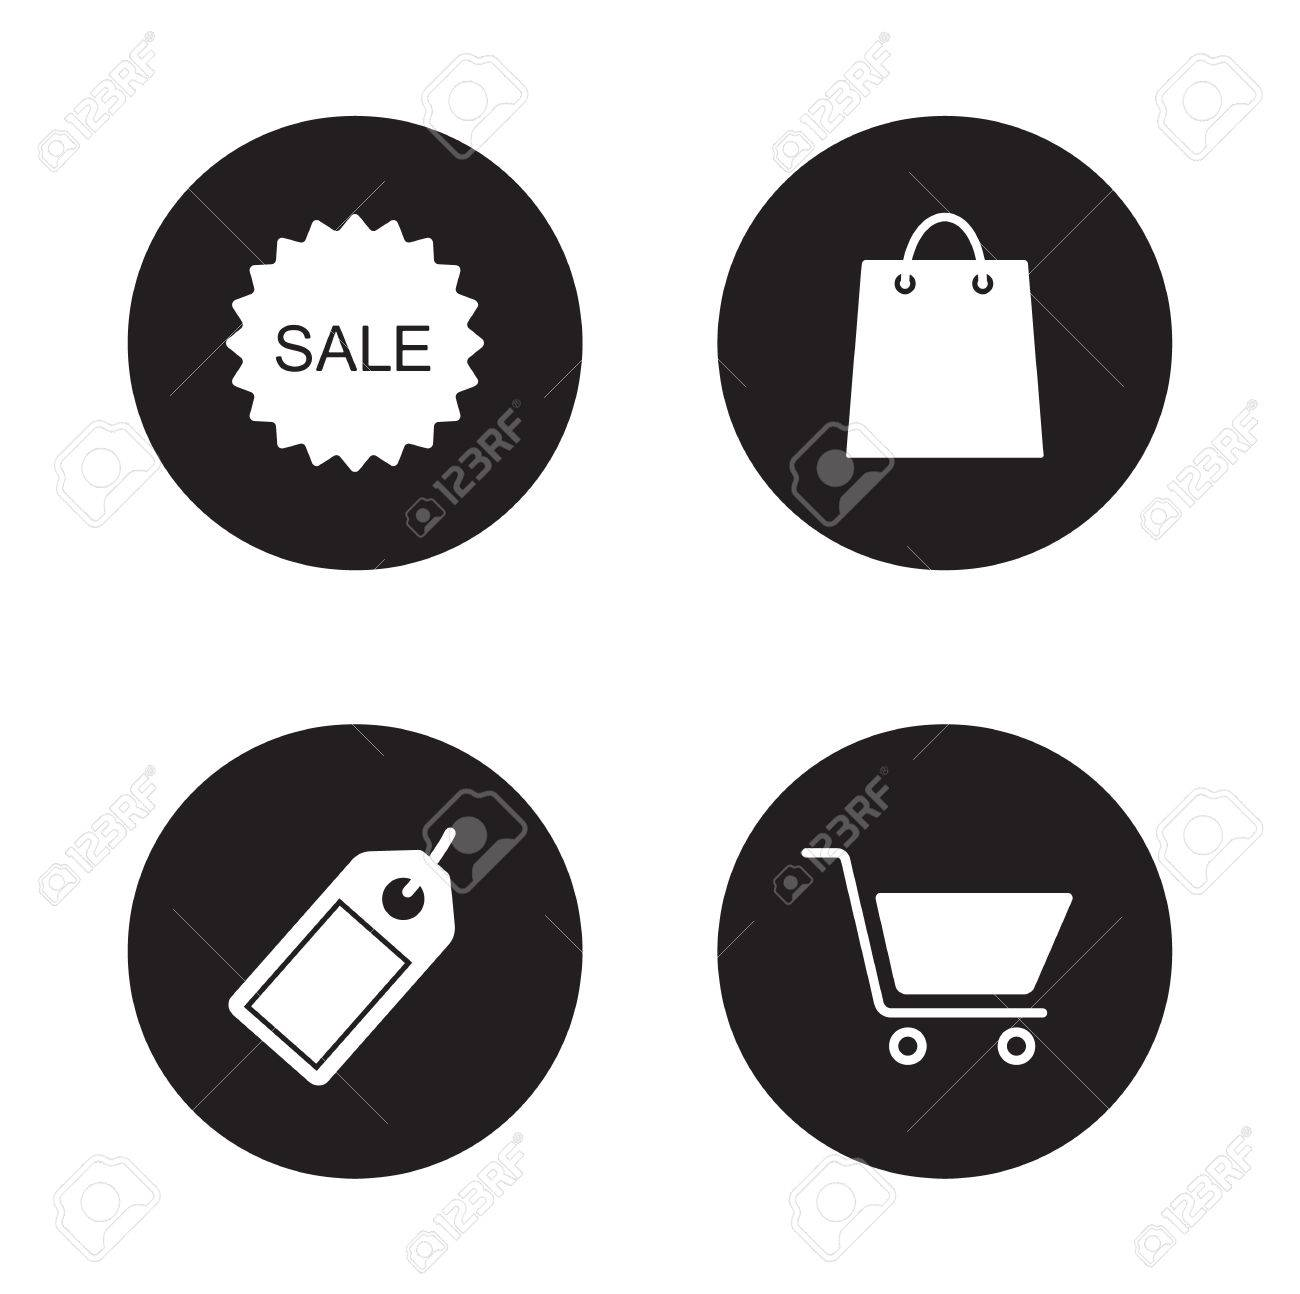 Shopping icons set. Mall and supermarket white color symbols. Web store and e-commerce silhouette emblems. Sale sticker and discount price tag black emblems. Trade signs. Retail shop vector labels - 48619596